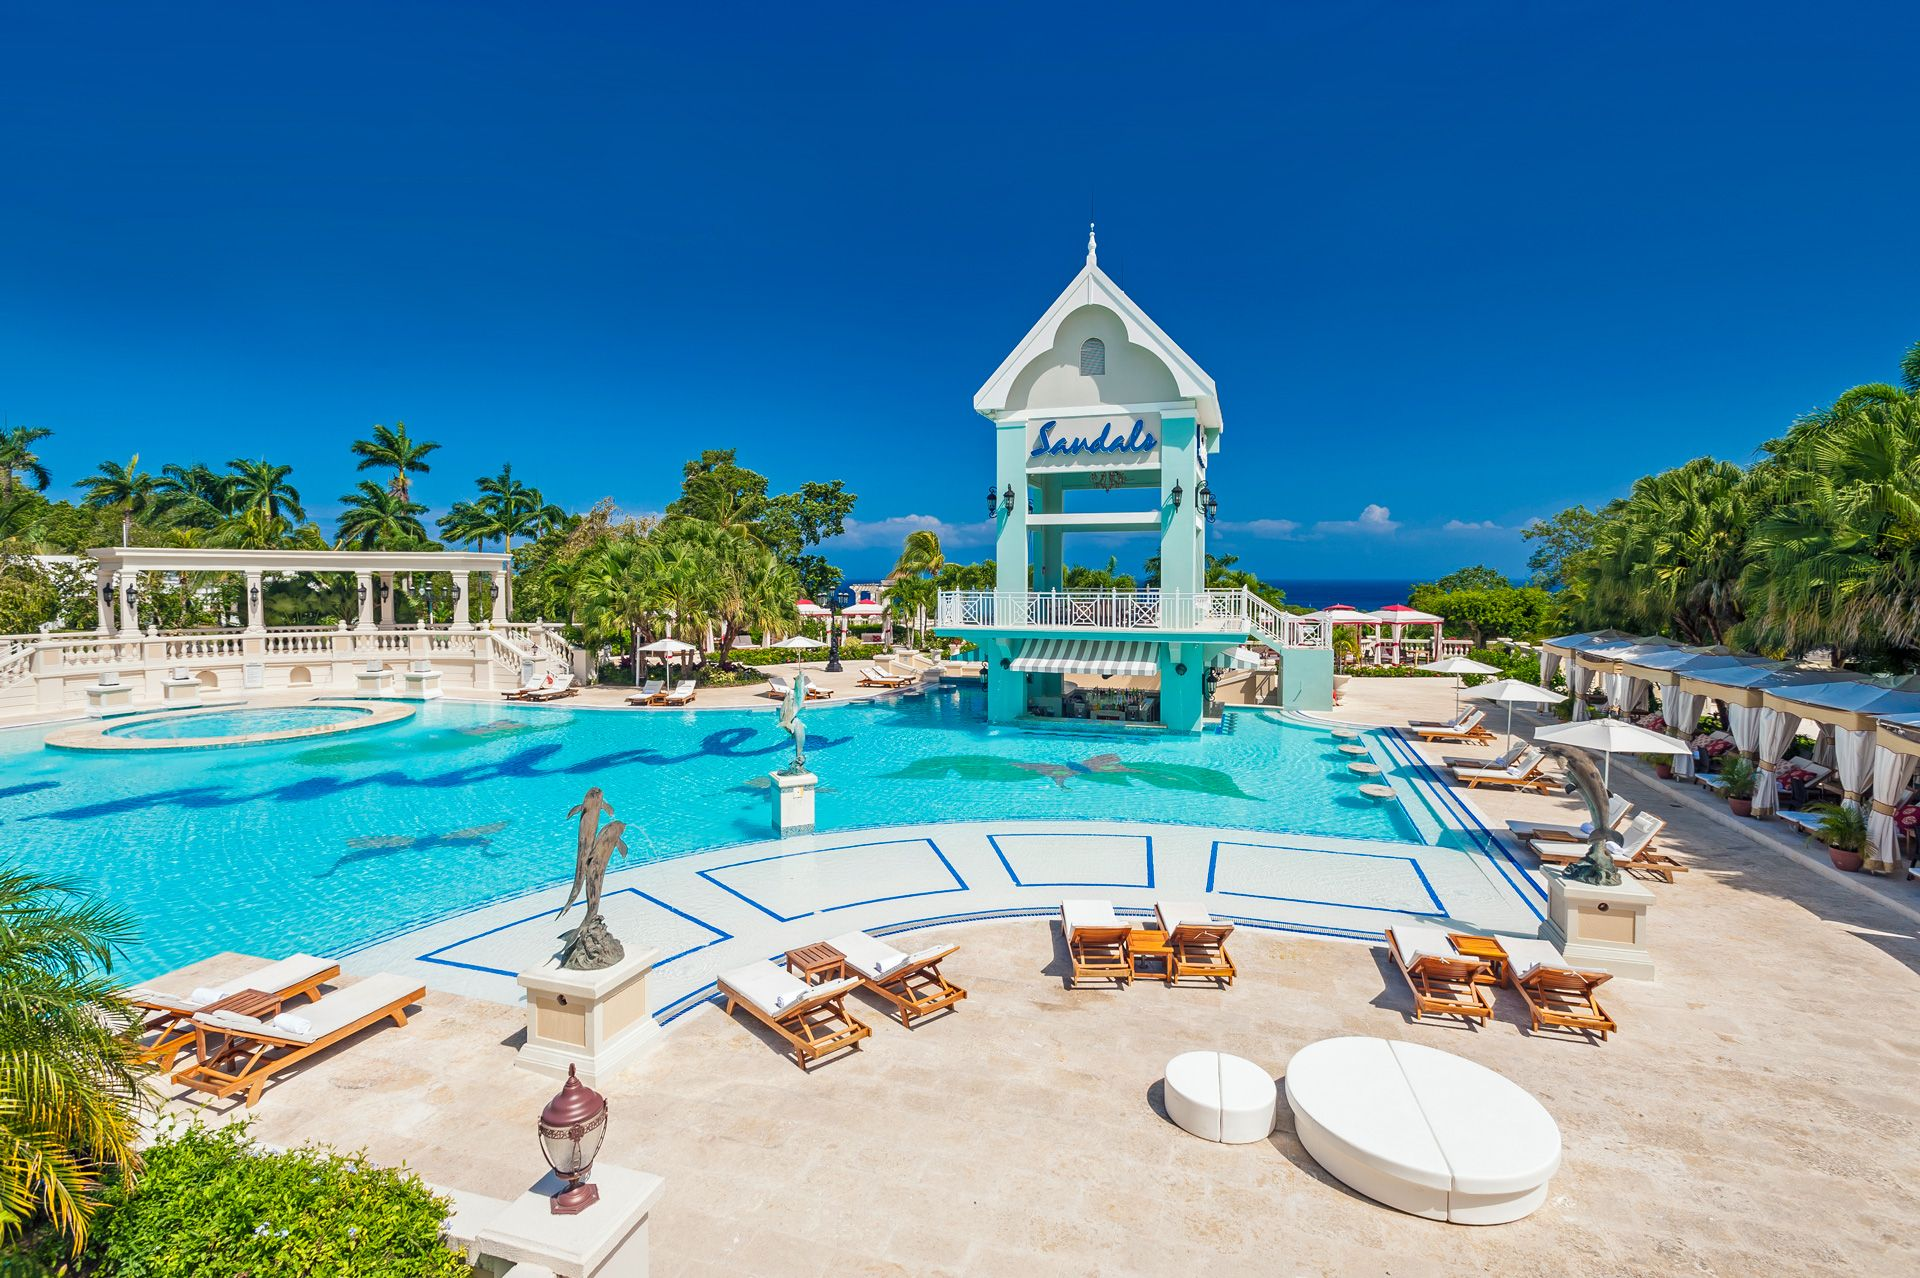 sandals ochi swim up bar